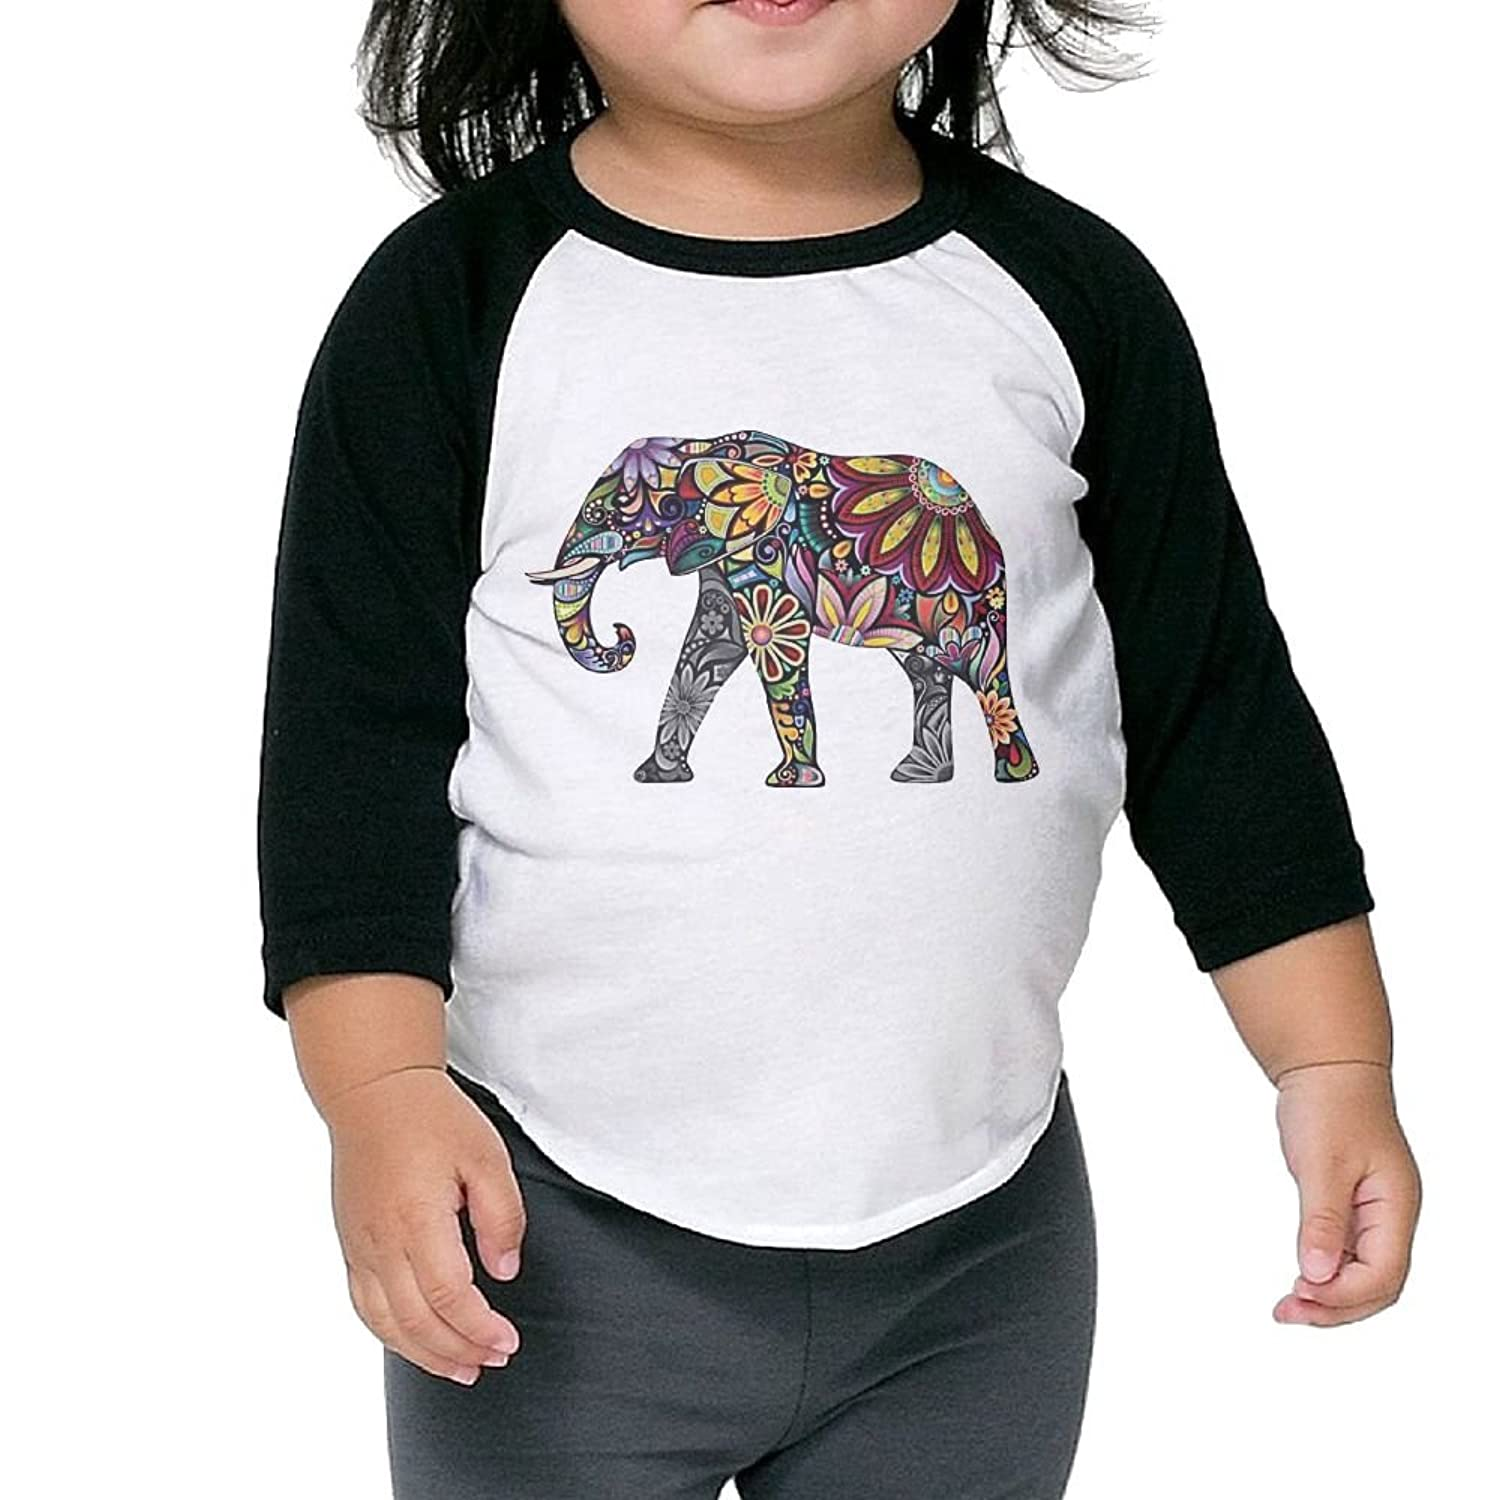 New CHENLY Unisex Kid's Sleeves Soft colorful Elephant Artwork Cotton 3/4 Sleeves T-Shirt For Child free shipping